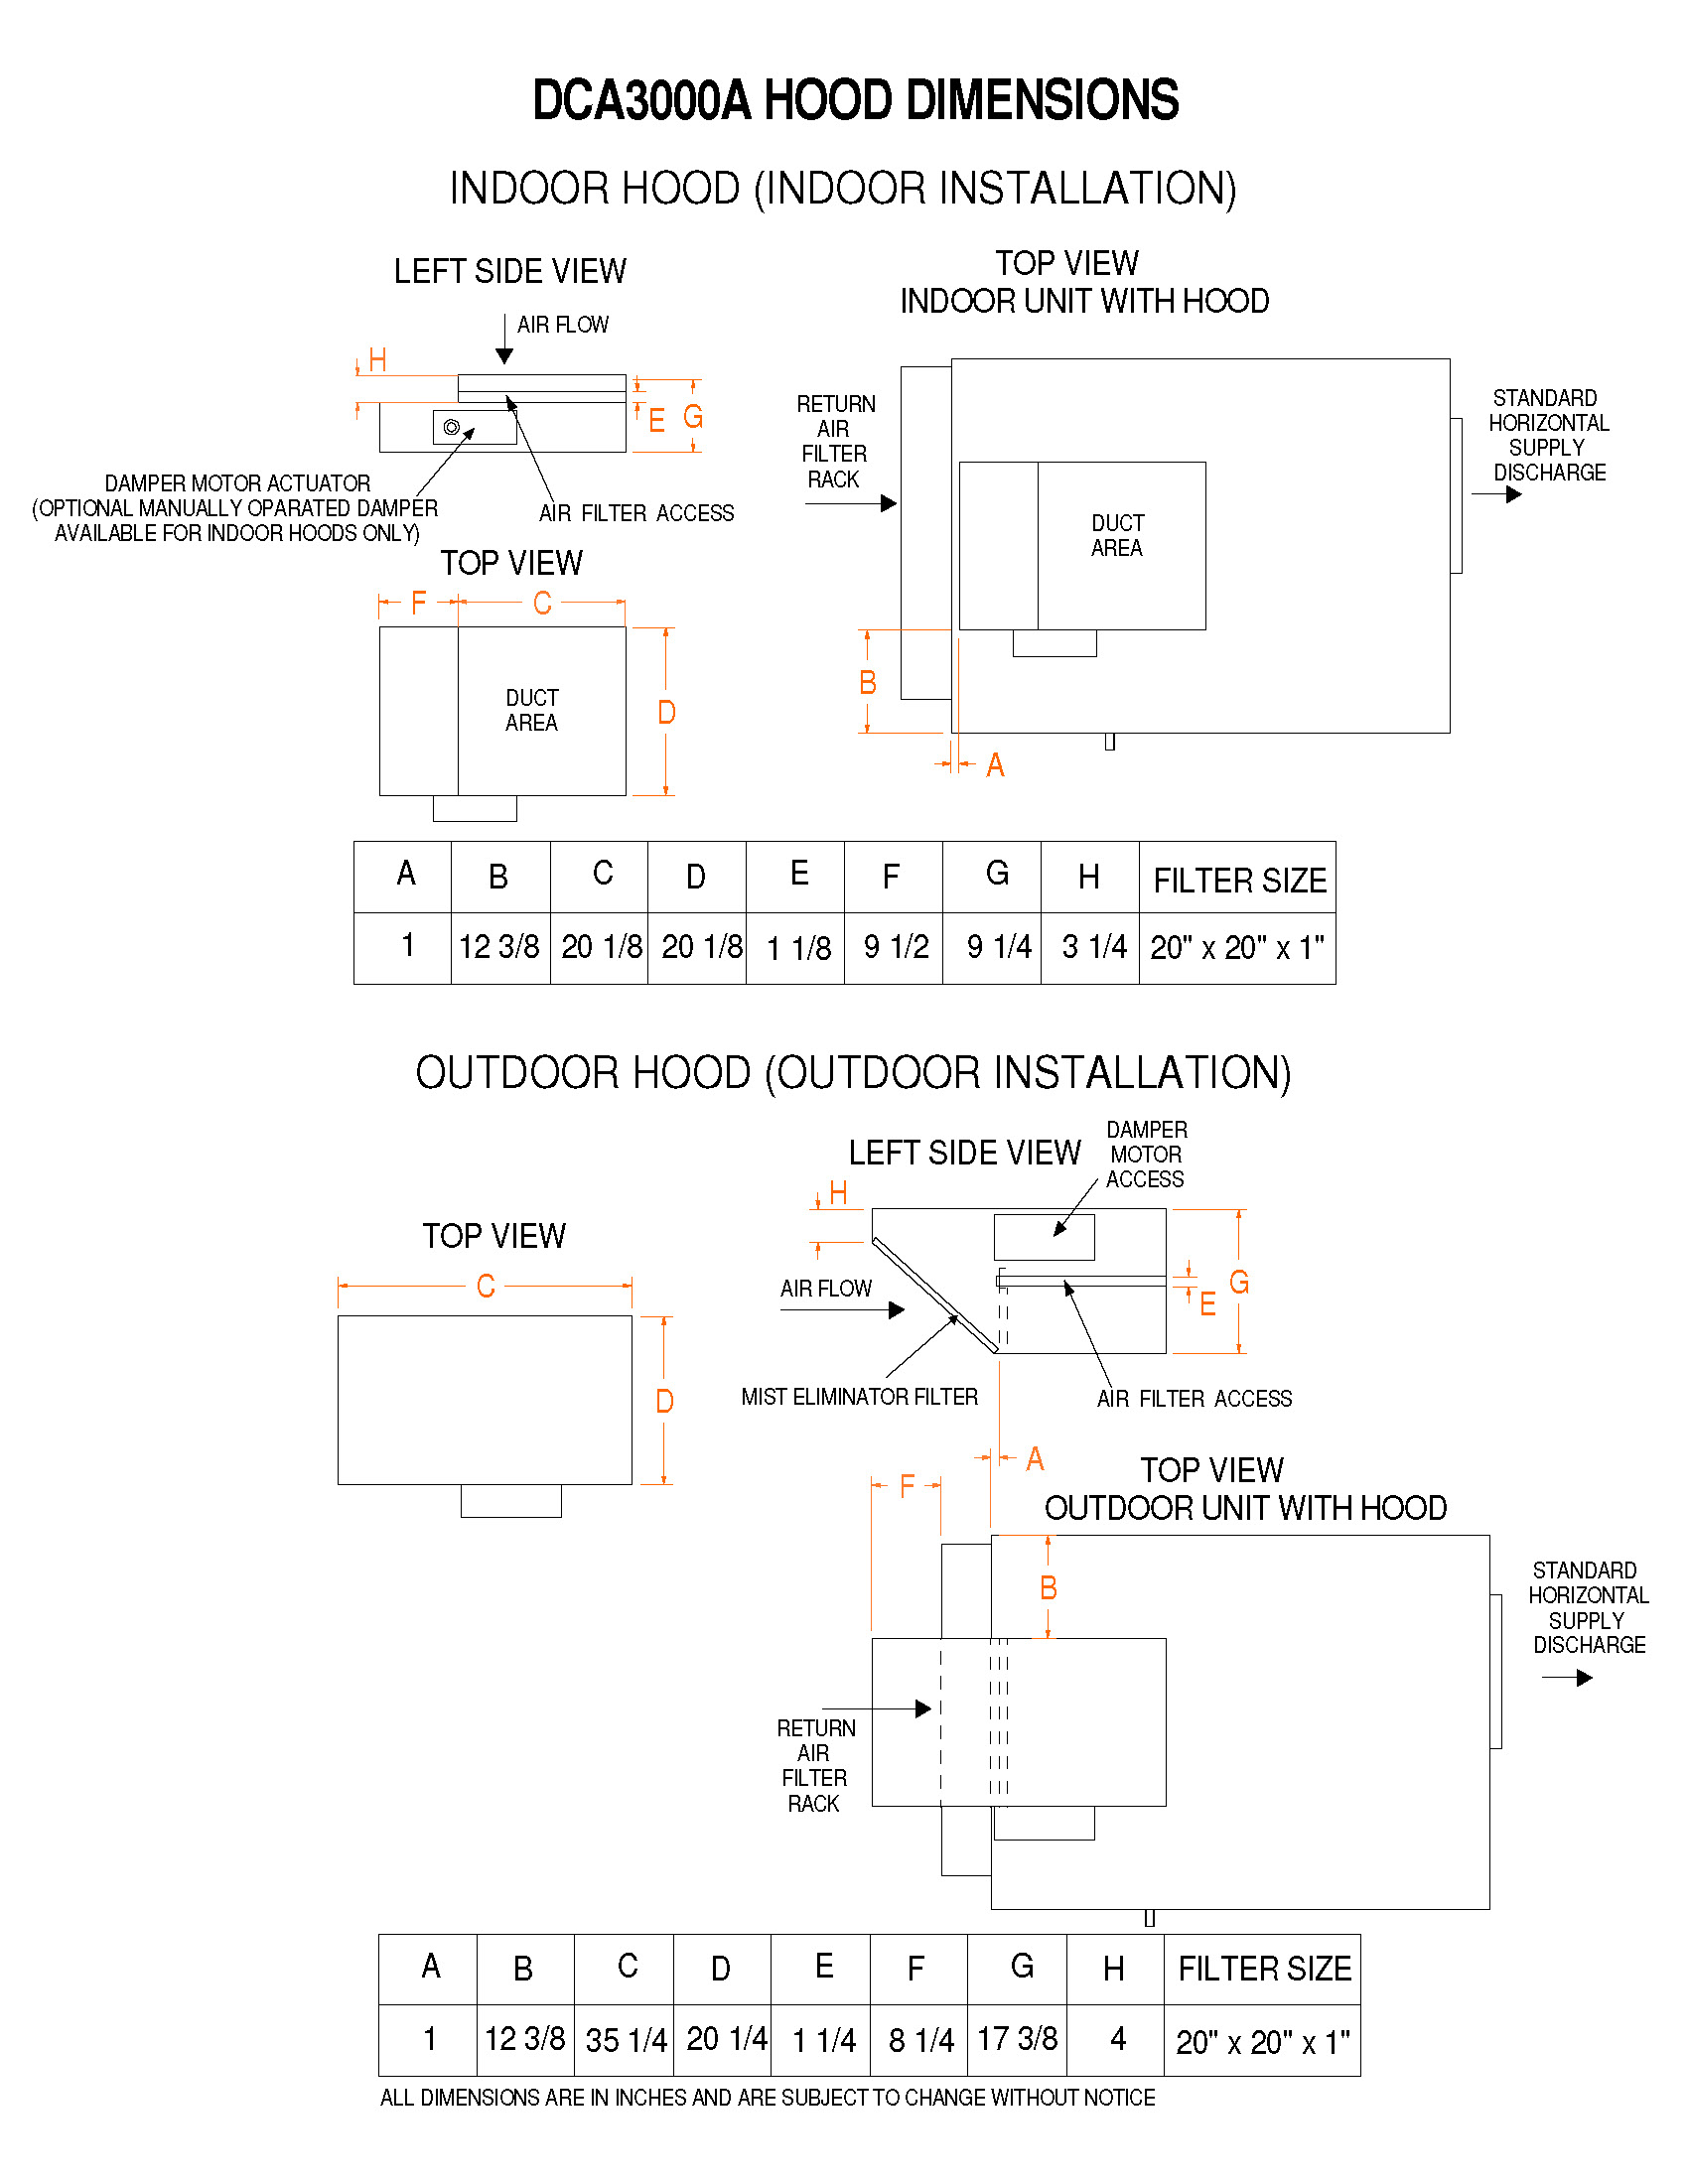 model dca3000a, non water heating assist dehumidifier on Timer Wiring Diagram dca 3000t discharge � dca 3000t intake � 3000a hood dimensions